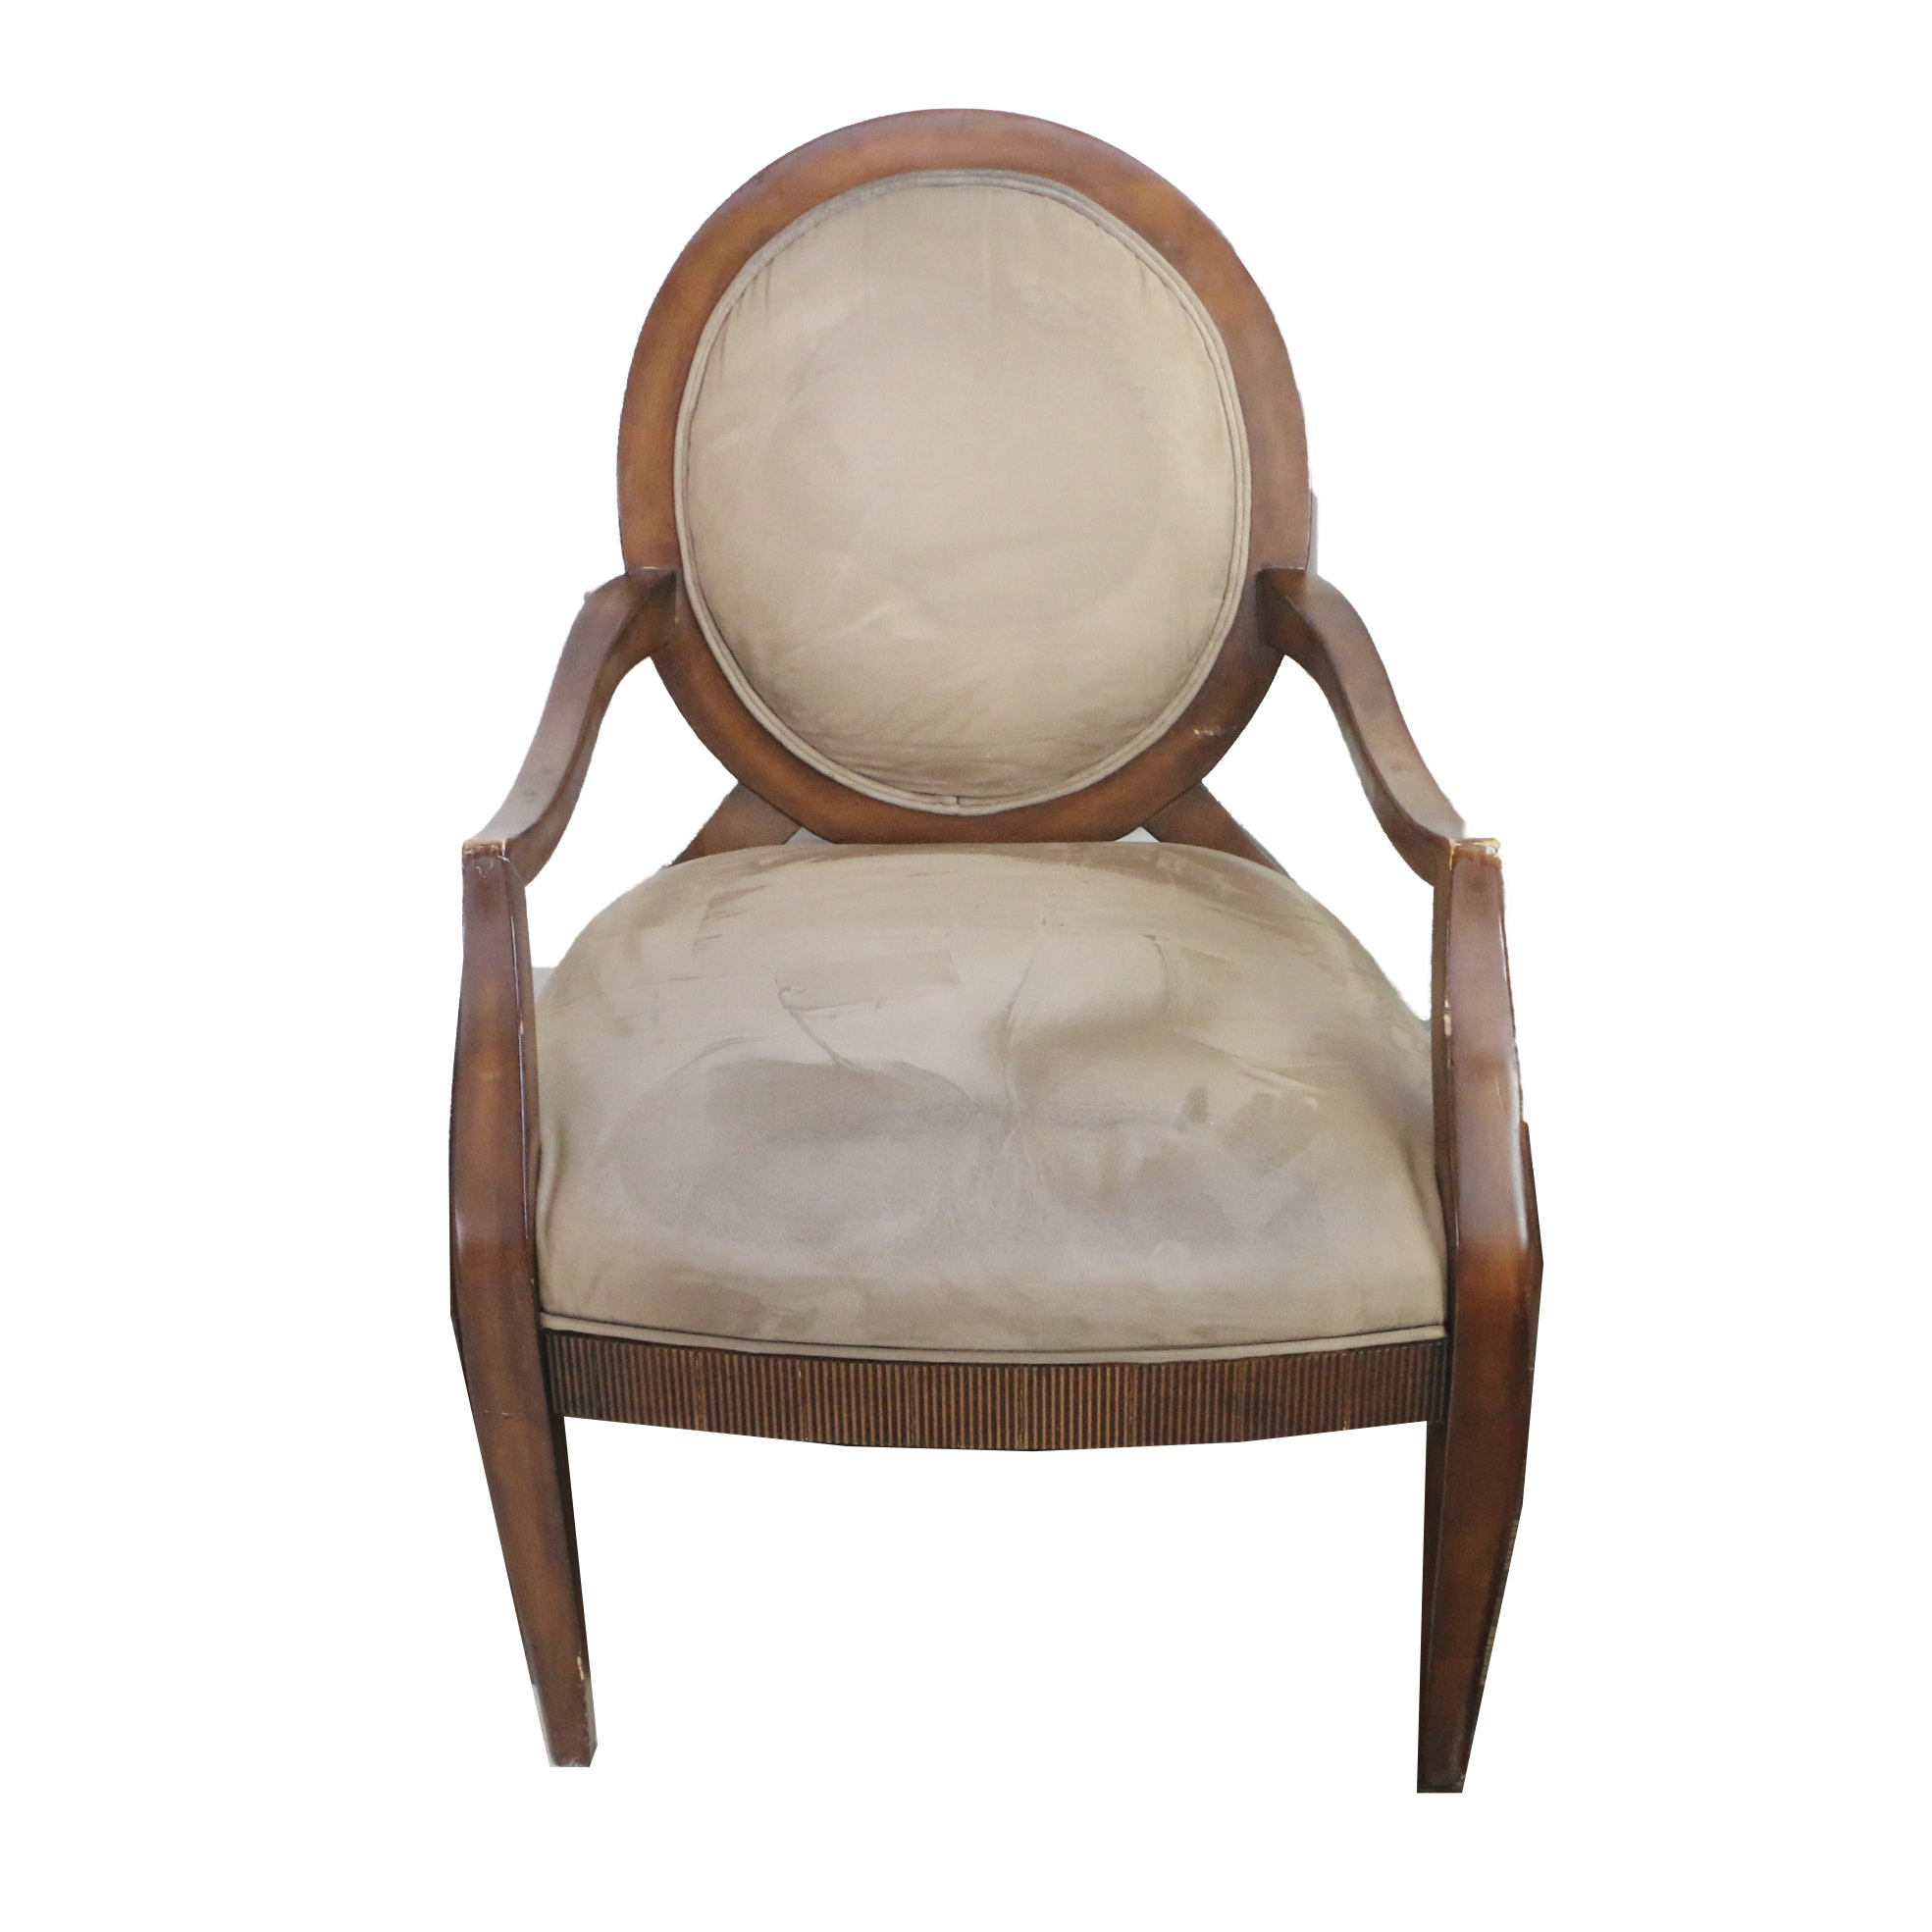 Contemporary Upholstered Oval Back Armchair